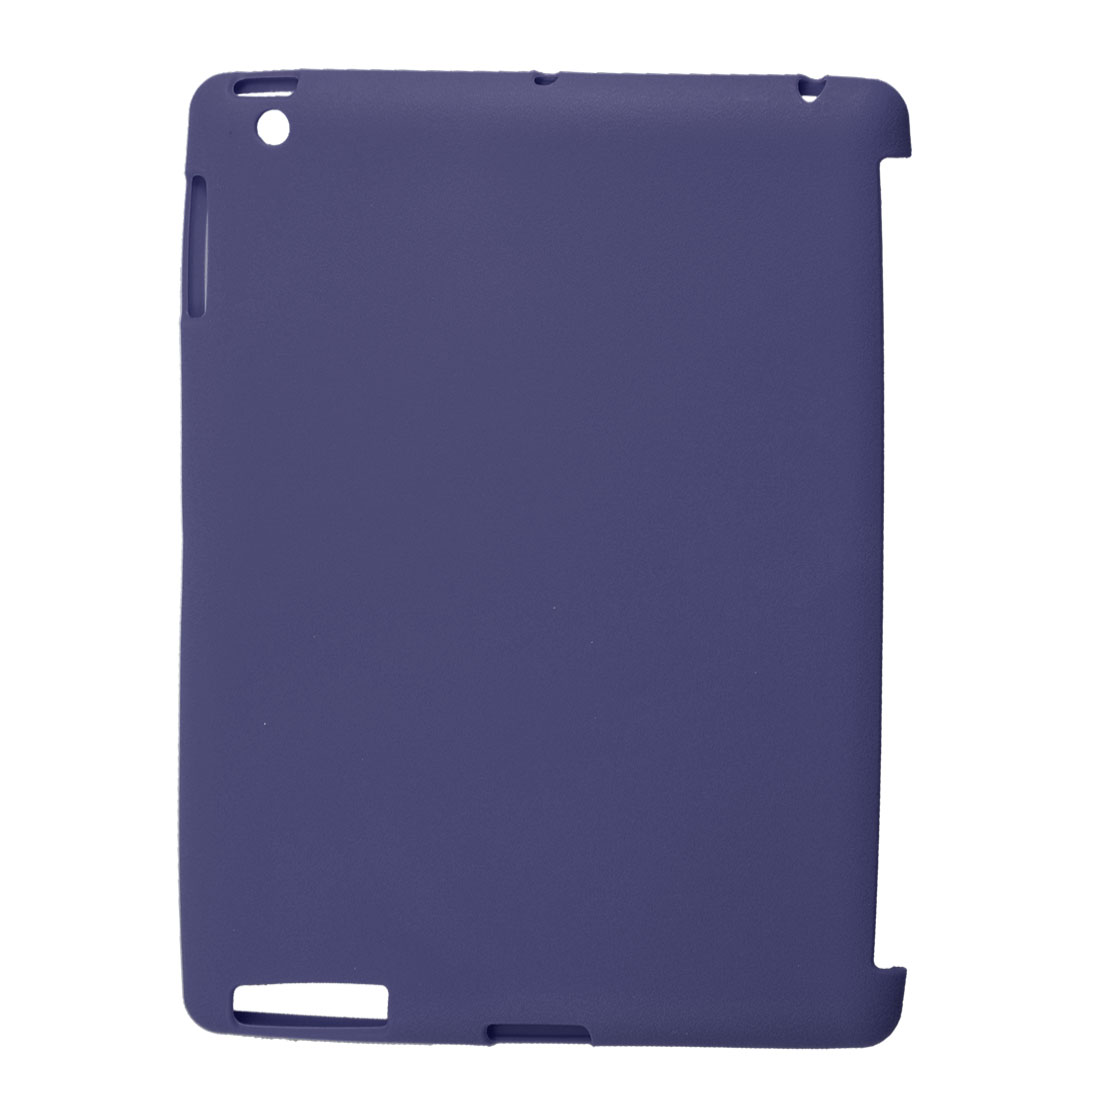 Dark Blue Soft Plastic Protective Shell Cover for iPad 2 3